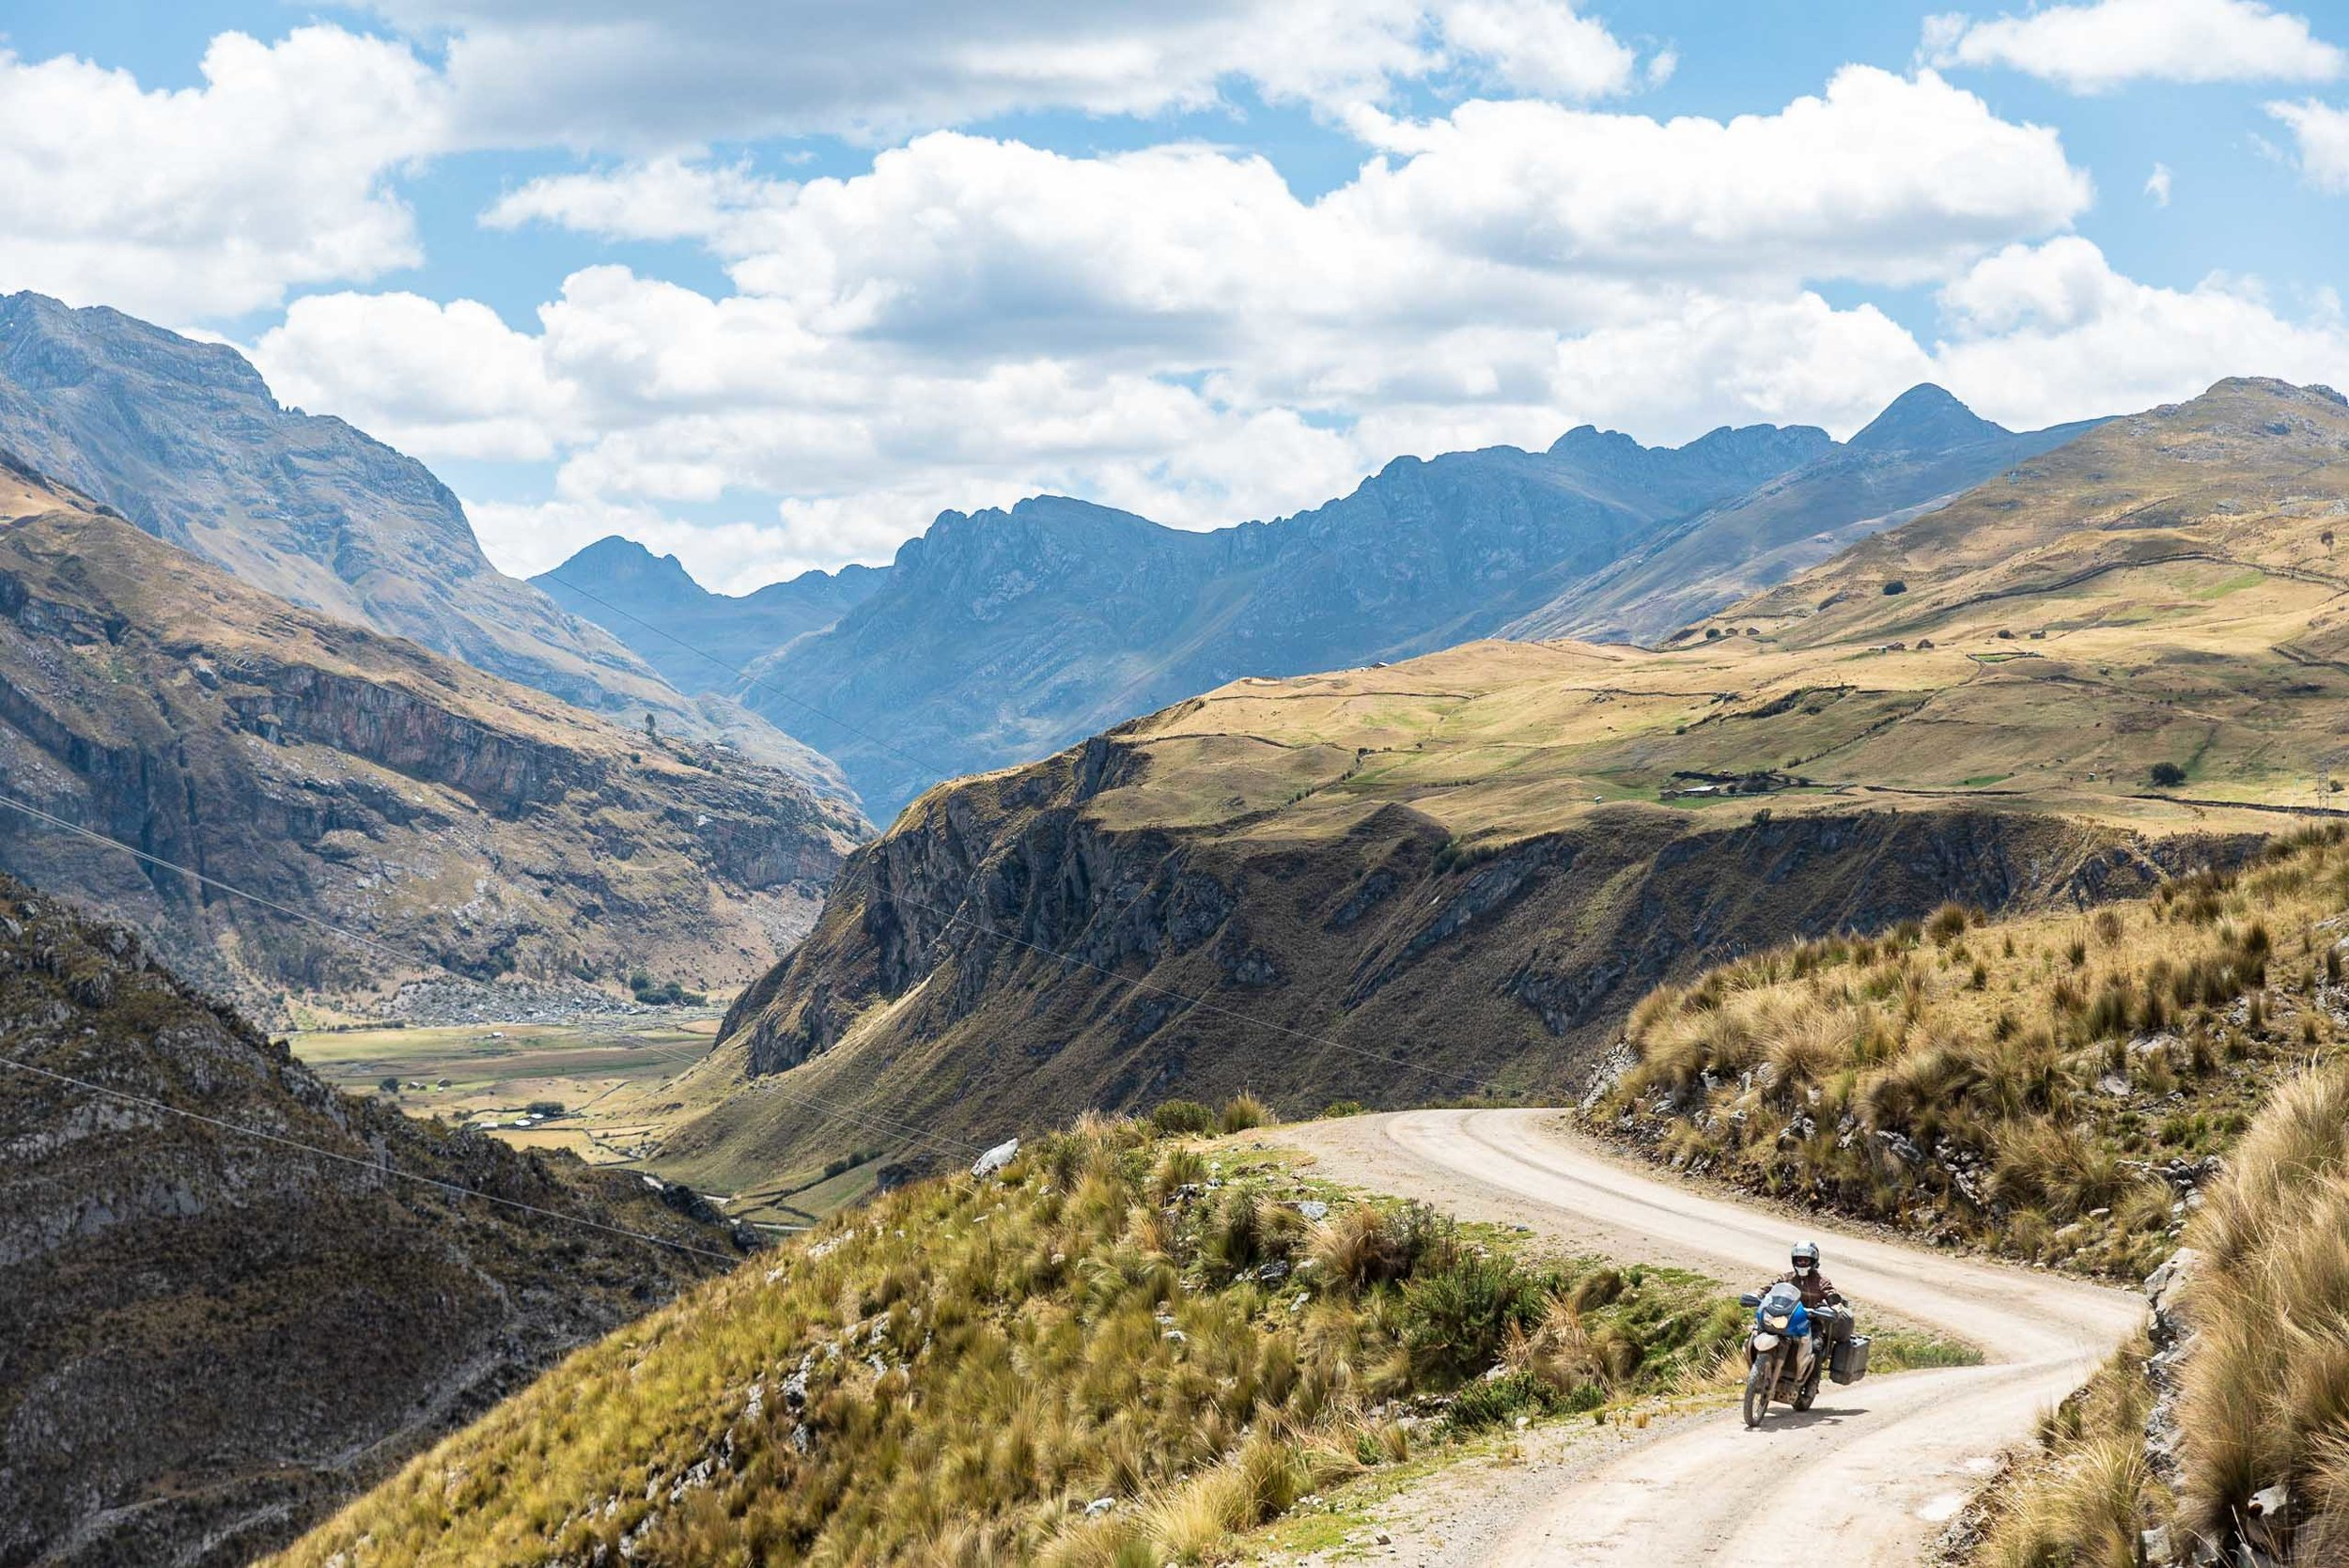 THE SNAFU - RIDING TO HUAYHUASH